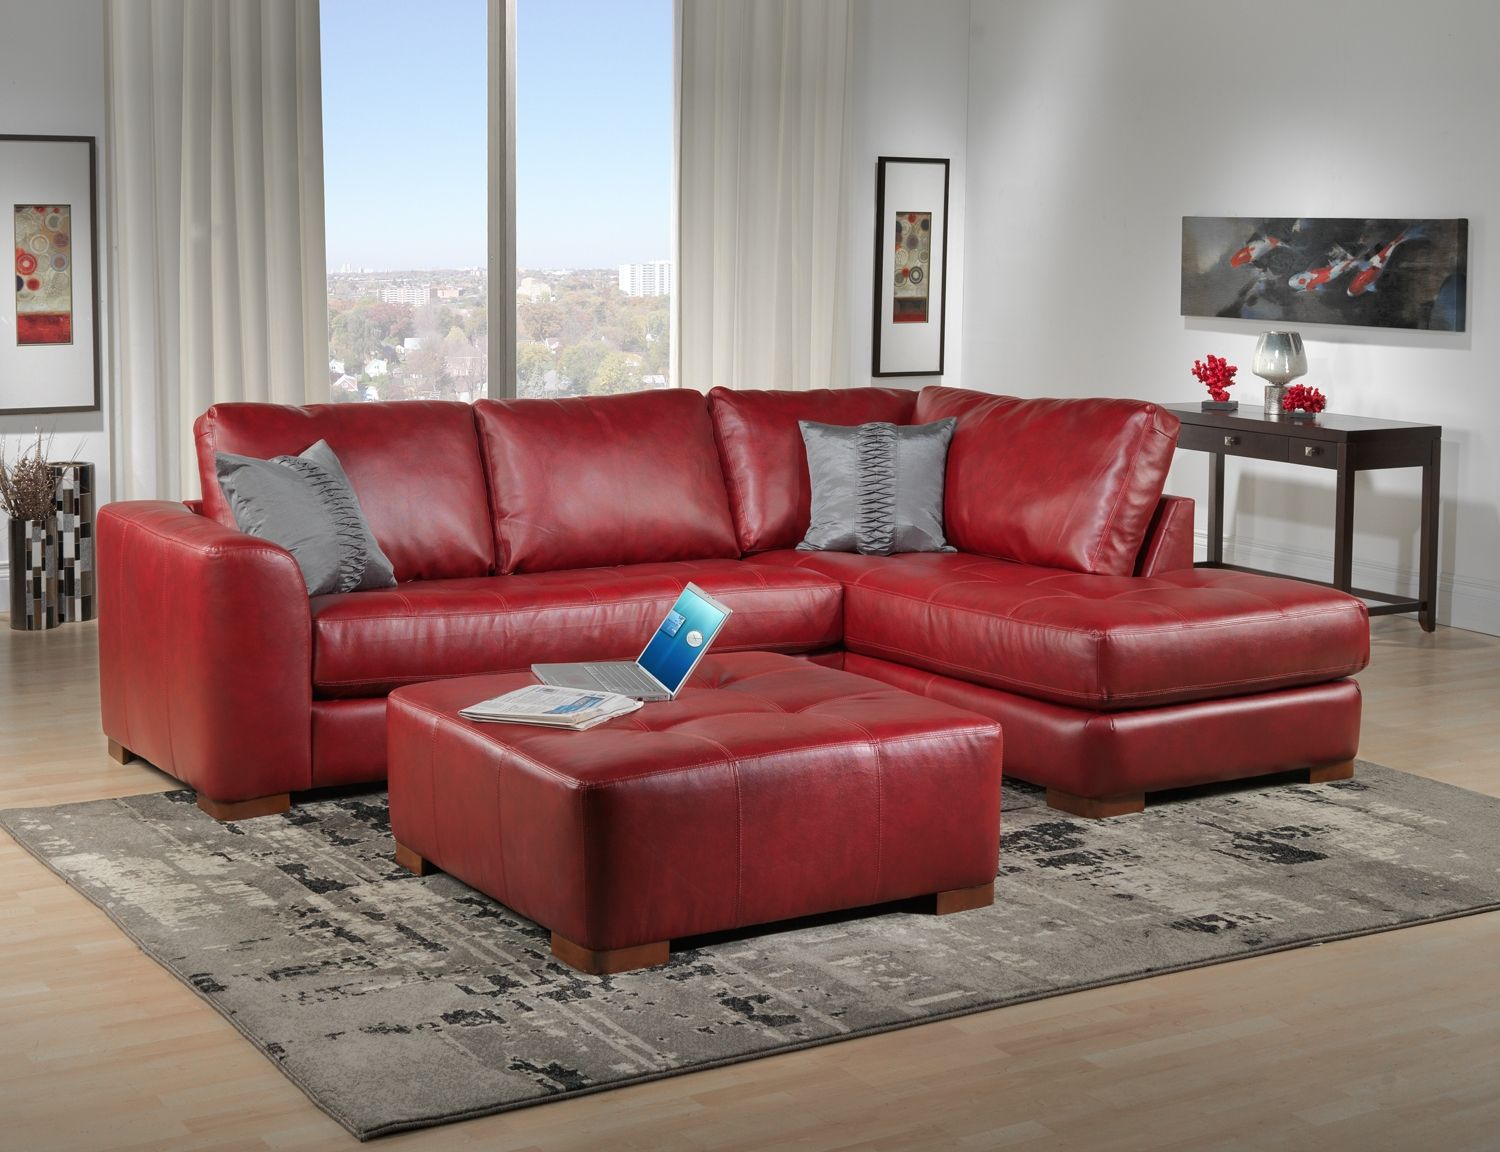 images of living room with red sofa theater sleeper i want a leather couch humble abode pinterest